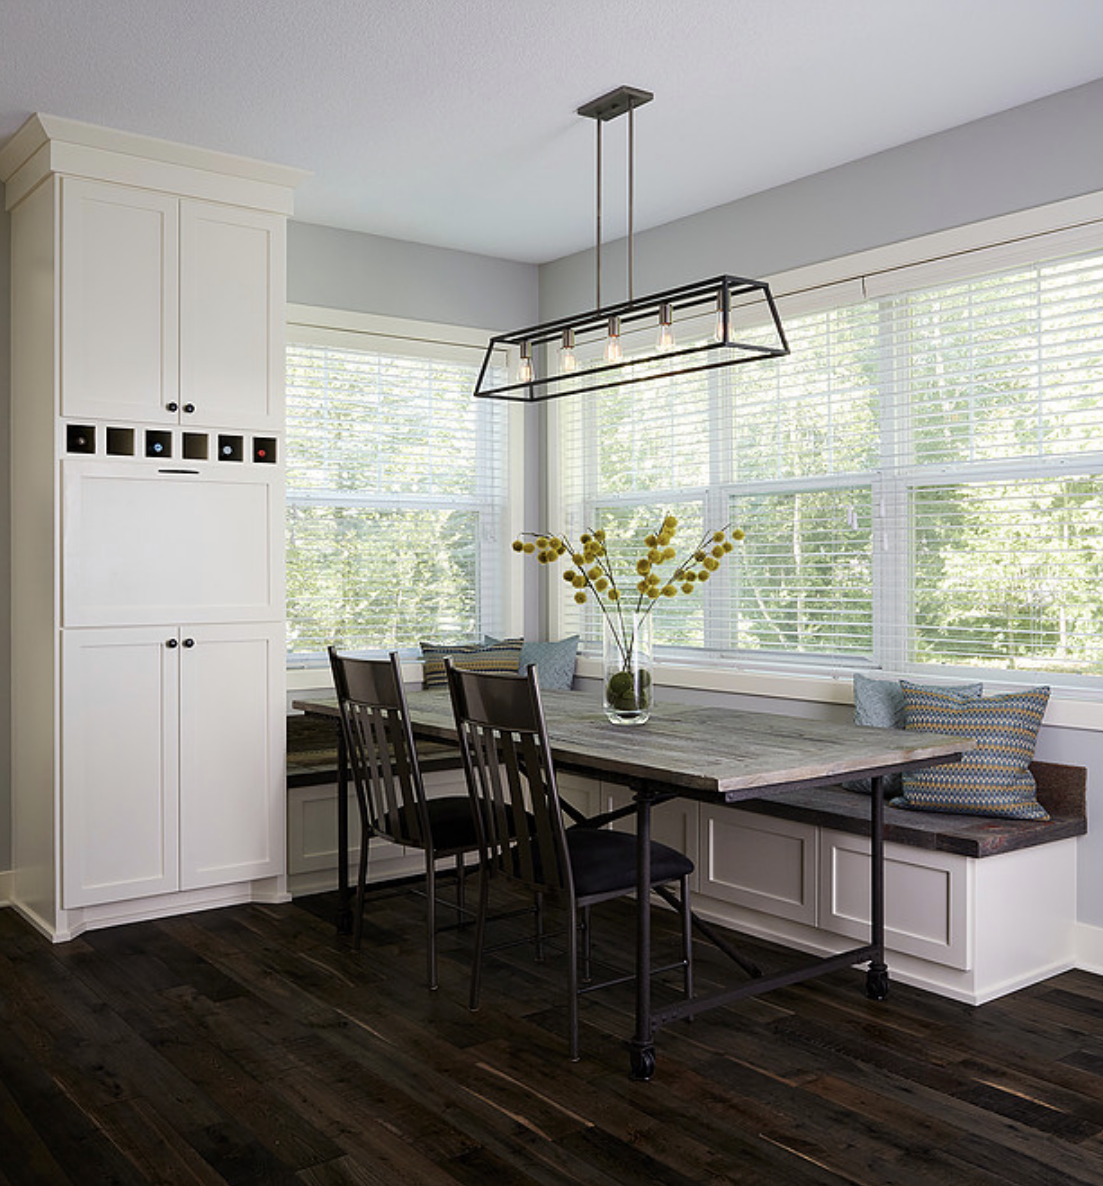 Reclaimed wood pops in the dining room table and built-in bench seating gave this kitchen a modern farmhouse aesthetic.